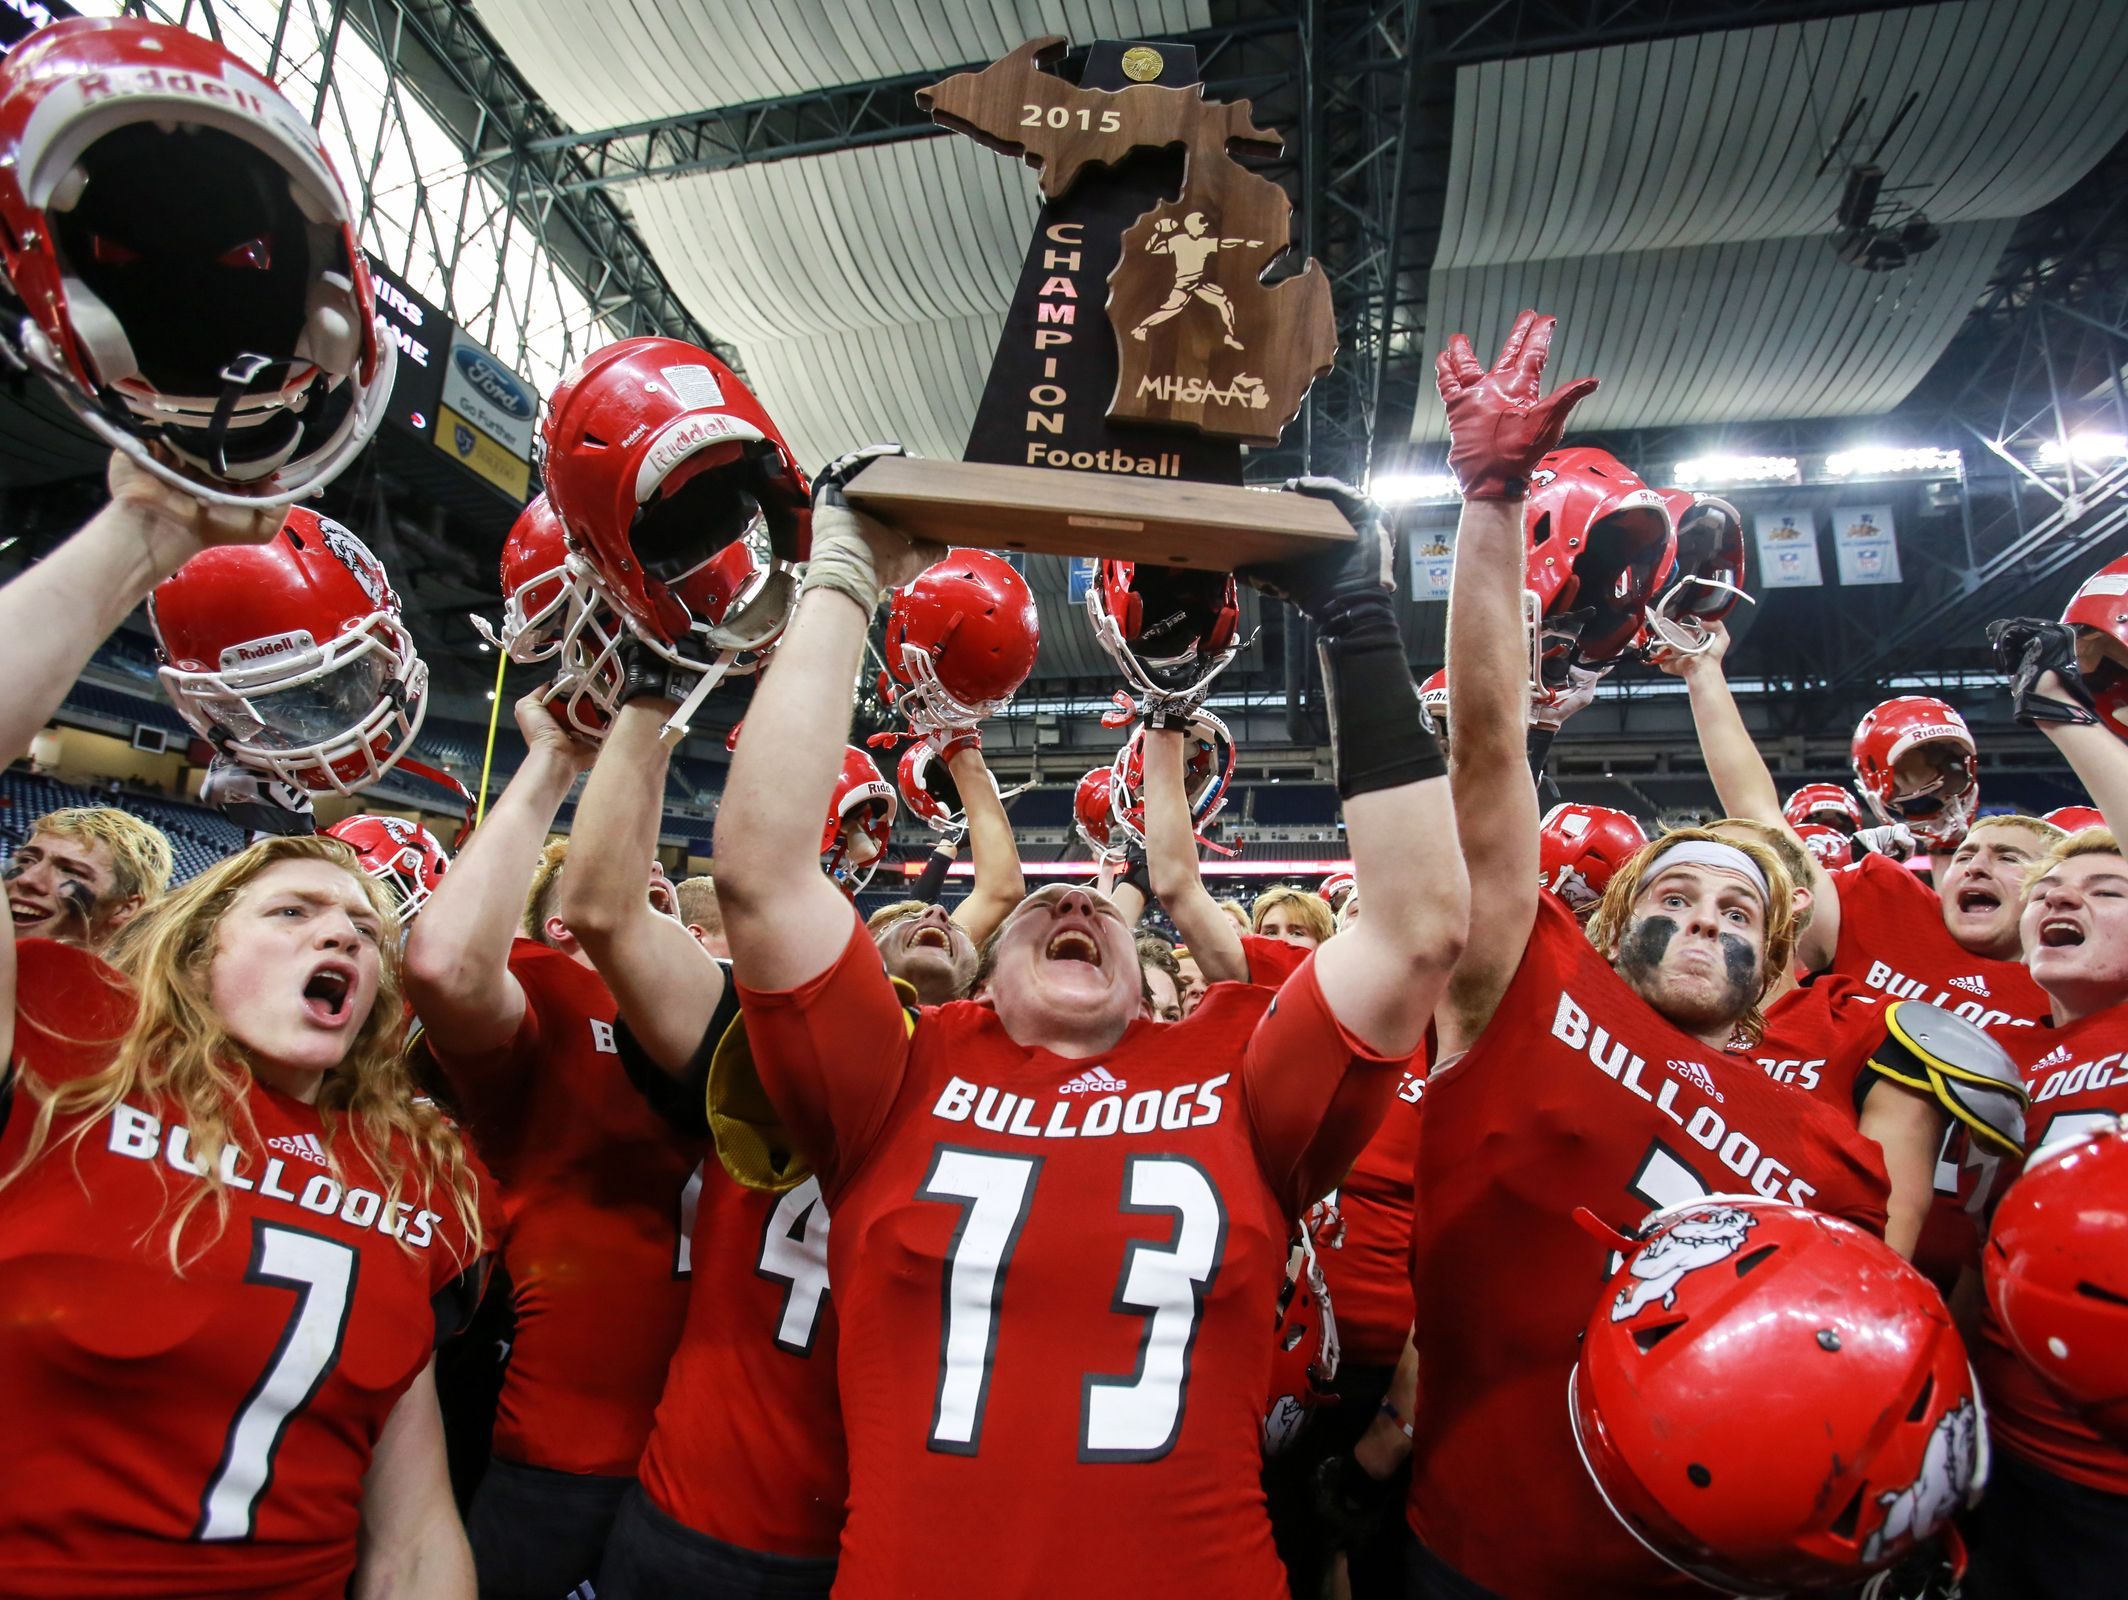 Romeo's Christopher Zanke lifts the MHSAA Football Champion trophy in the air surrounded by his teammates, after defeating Detroit Cass Tech in the Michigan High School Athletic Association football Division 1 finals at Ford Field in Detroit on Saturday, Nov. 28, 2015.